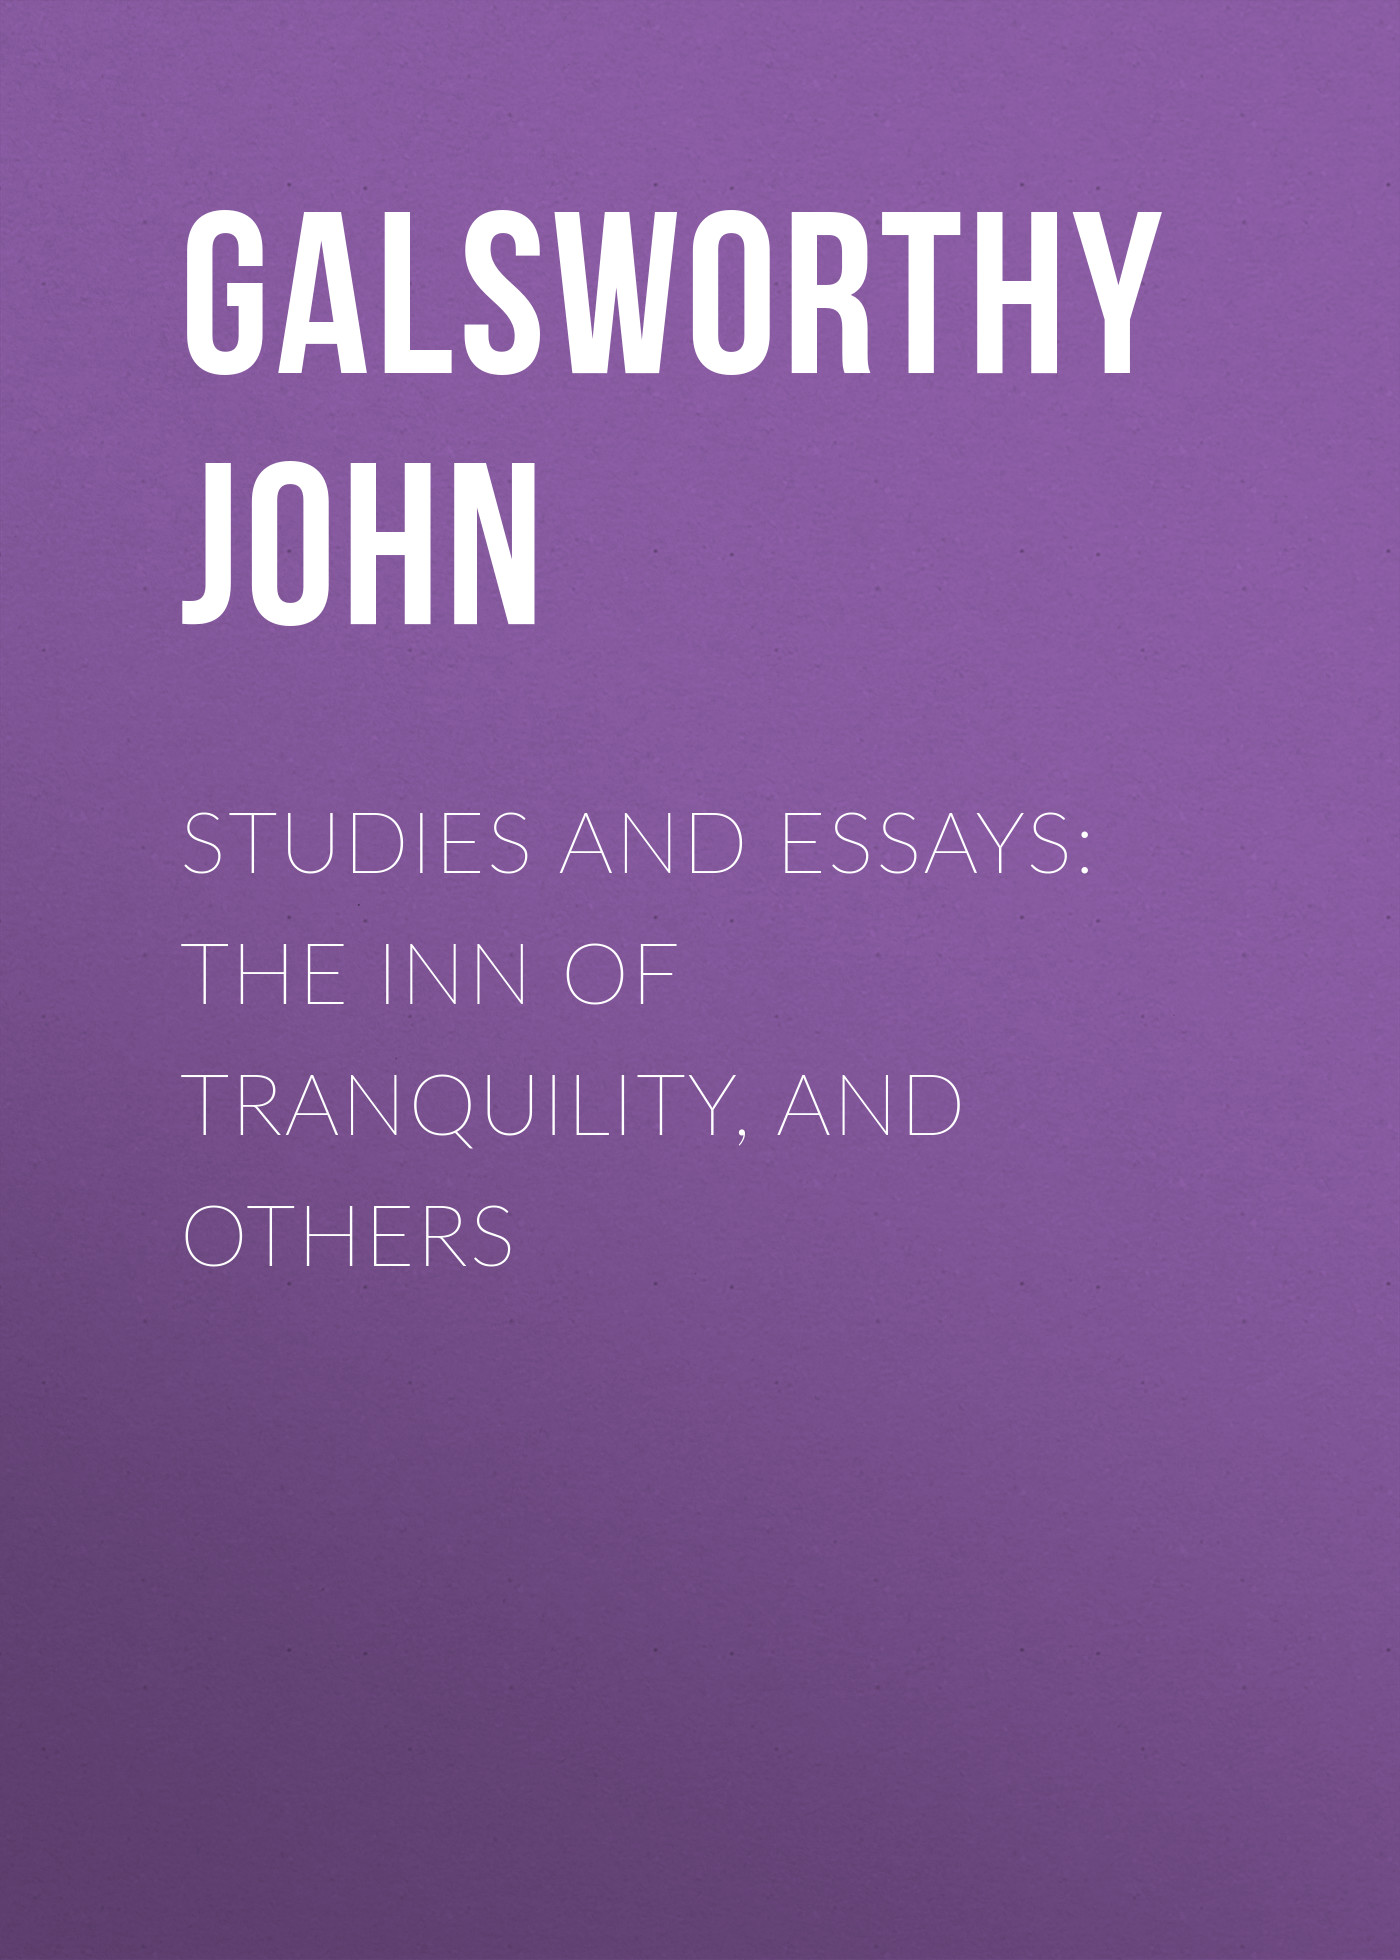 лучшая цена Galsworthy John Studies and Essays: The Inn of Tranquility, and Others